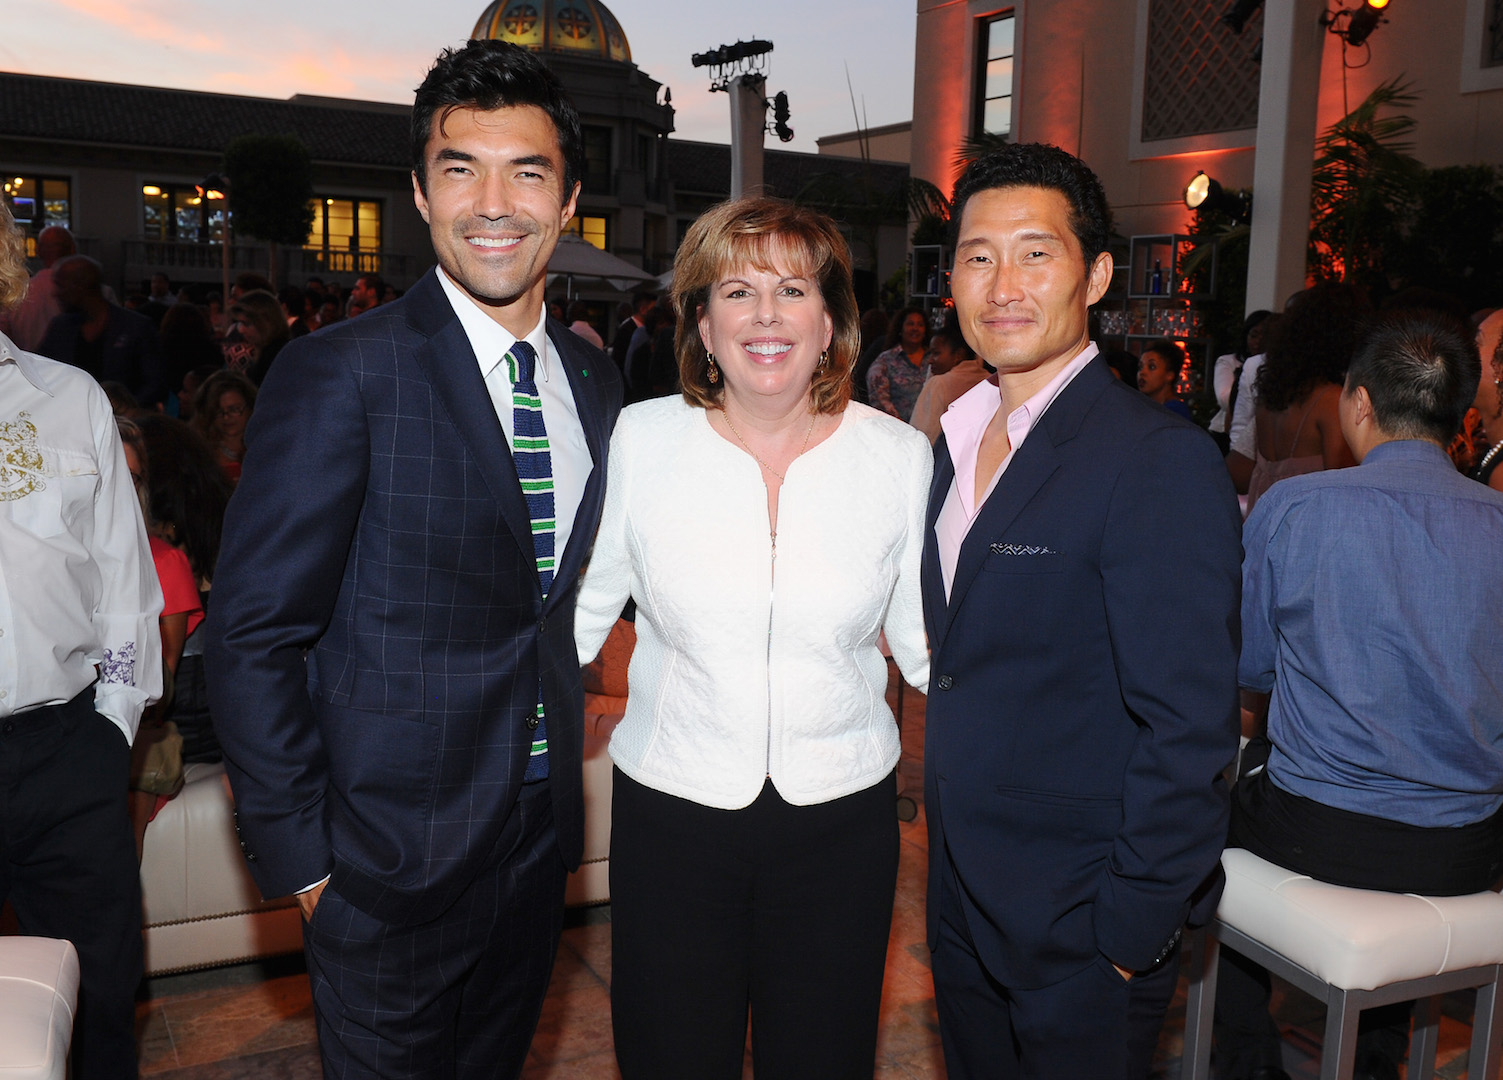 Ian Anthony Dale, from left, Ilyanne Morden Kichaven, executive director of SAG/AFTRA and Daniel Dae Kim,  seen at the Television Academy's 67th Emmy Awards Dynamic and Diverse Nominee Reception at the Montage Beverly Hills on Thursday, Aug. 27, 2015, in Beverly Hills, Calif. (Photo by Vince Bucci/Invision for the Television Academy/AP Images)